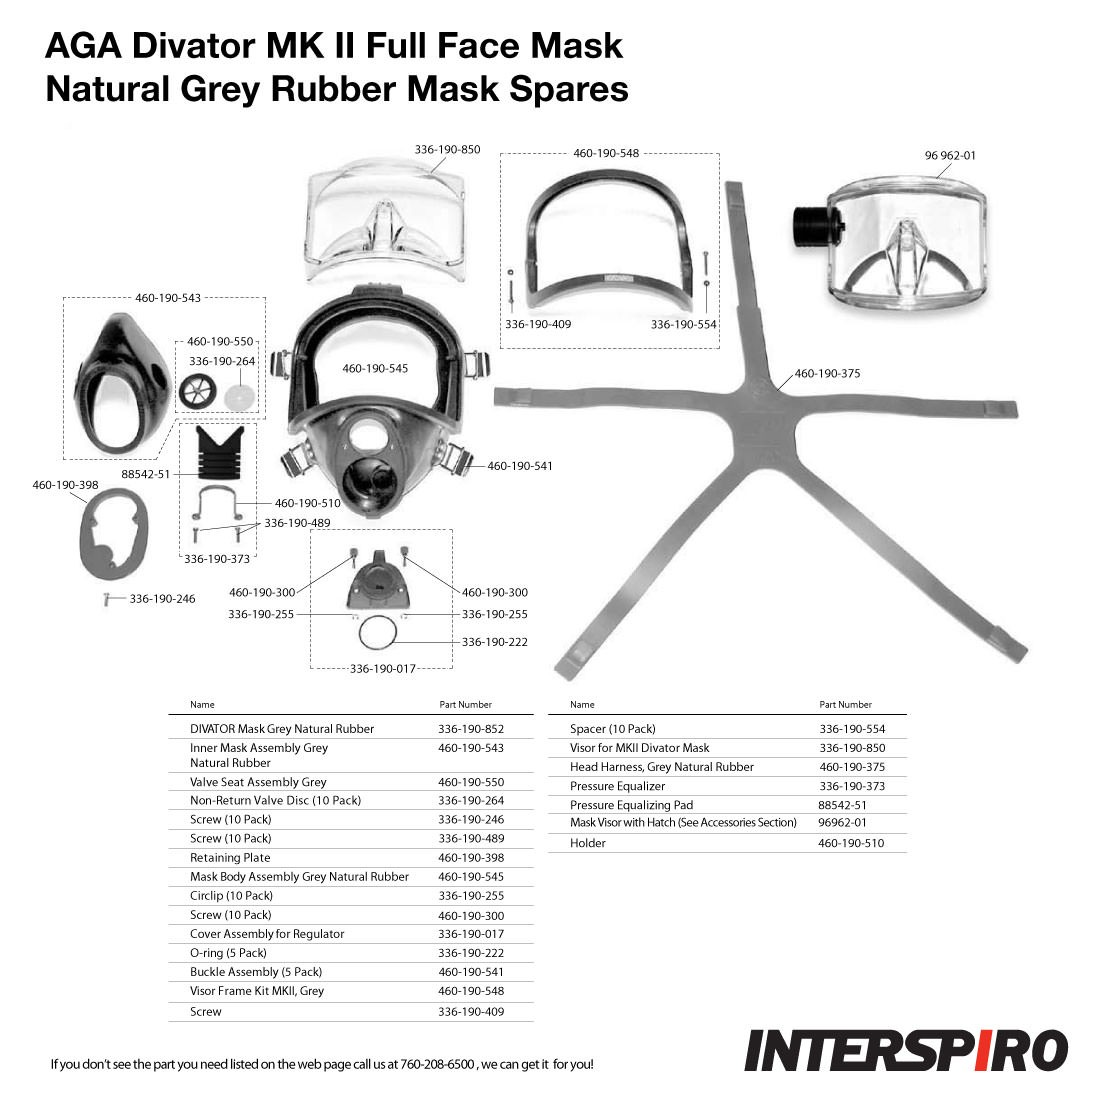 Interspiro AGA Divator MK II Full Face Mask with Positive Pressure Regulator - Natural Rubber - Grey - Mask Spares